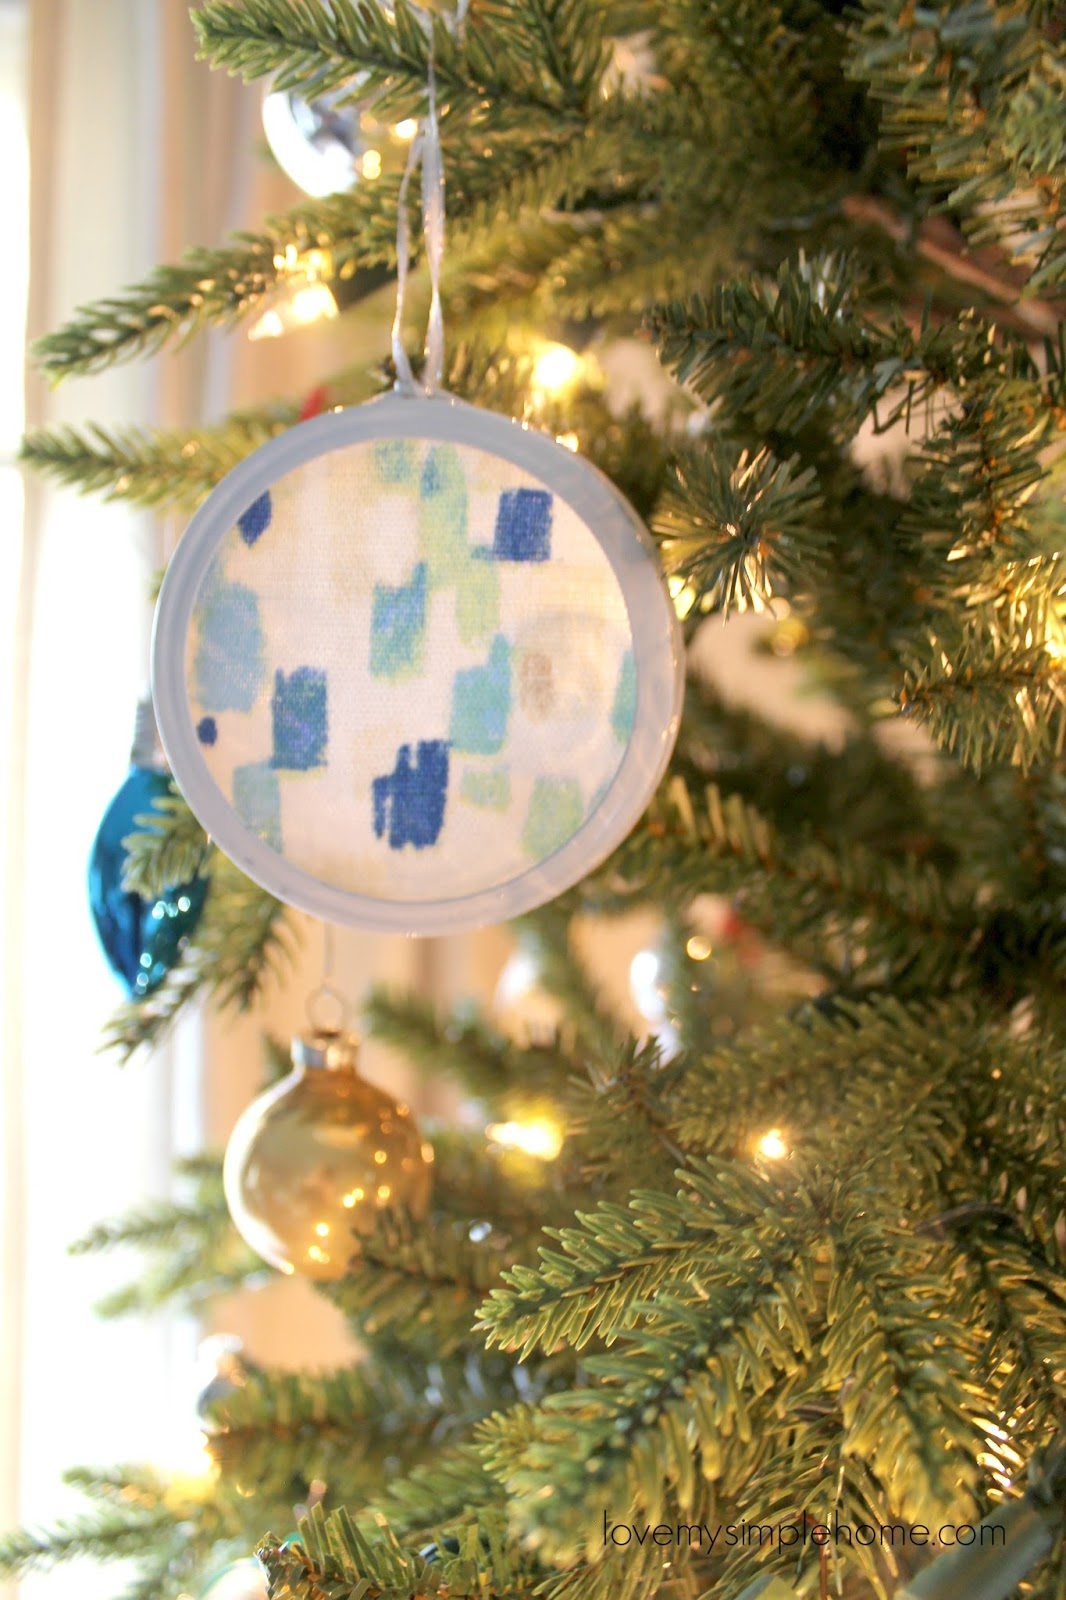 hang the ornaments on a lit or unlit christmas tree the ornaments add sparkle to the tree when hung in front of the lights or give as a gift wrapped - How To Make My Own Christmas Decorations